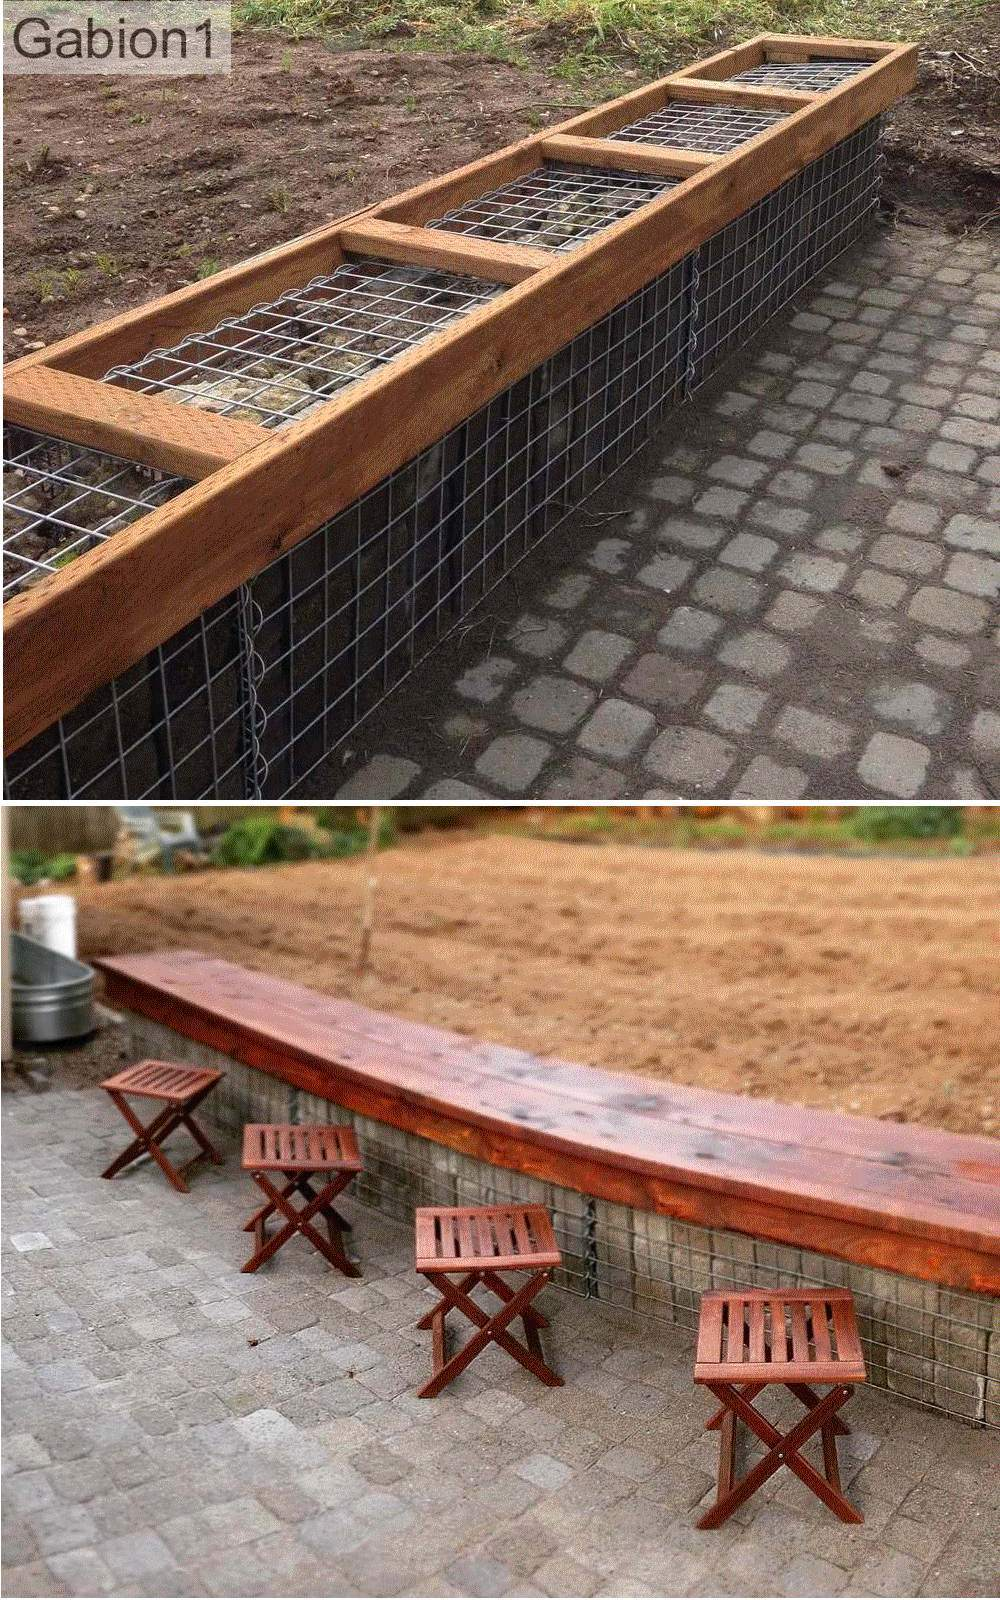 gabion bench seat detail